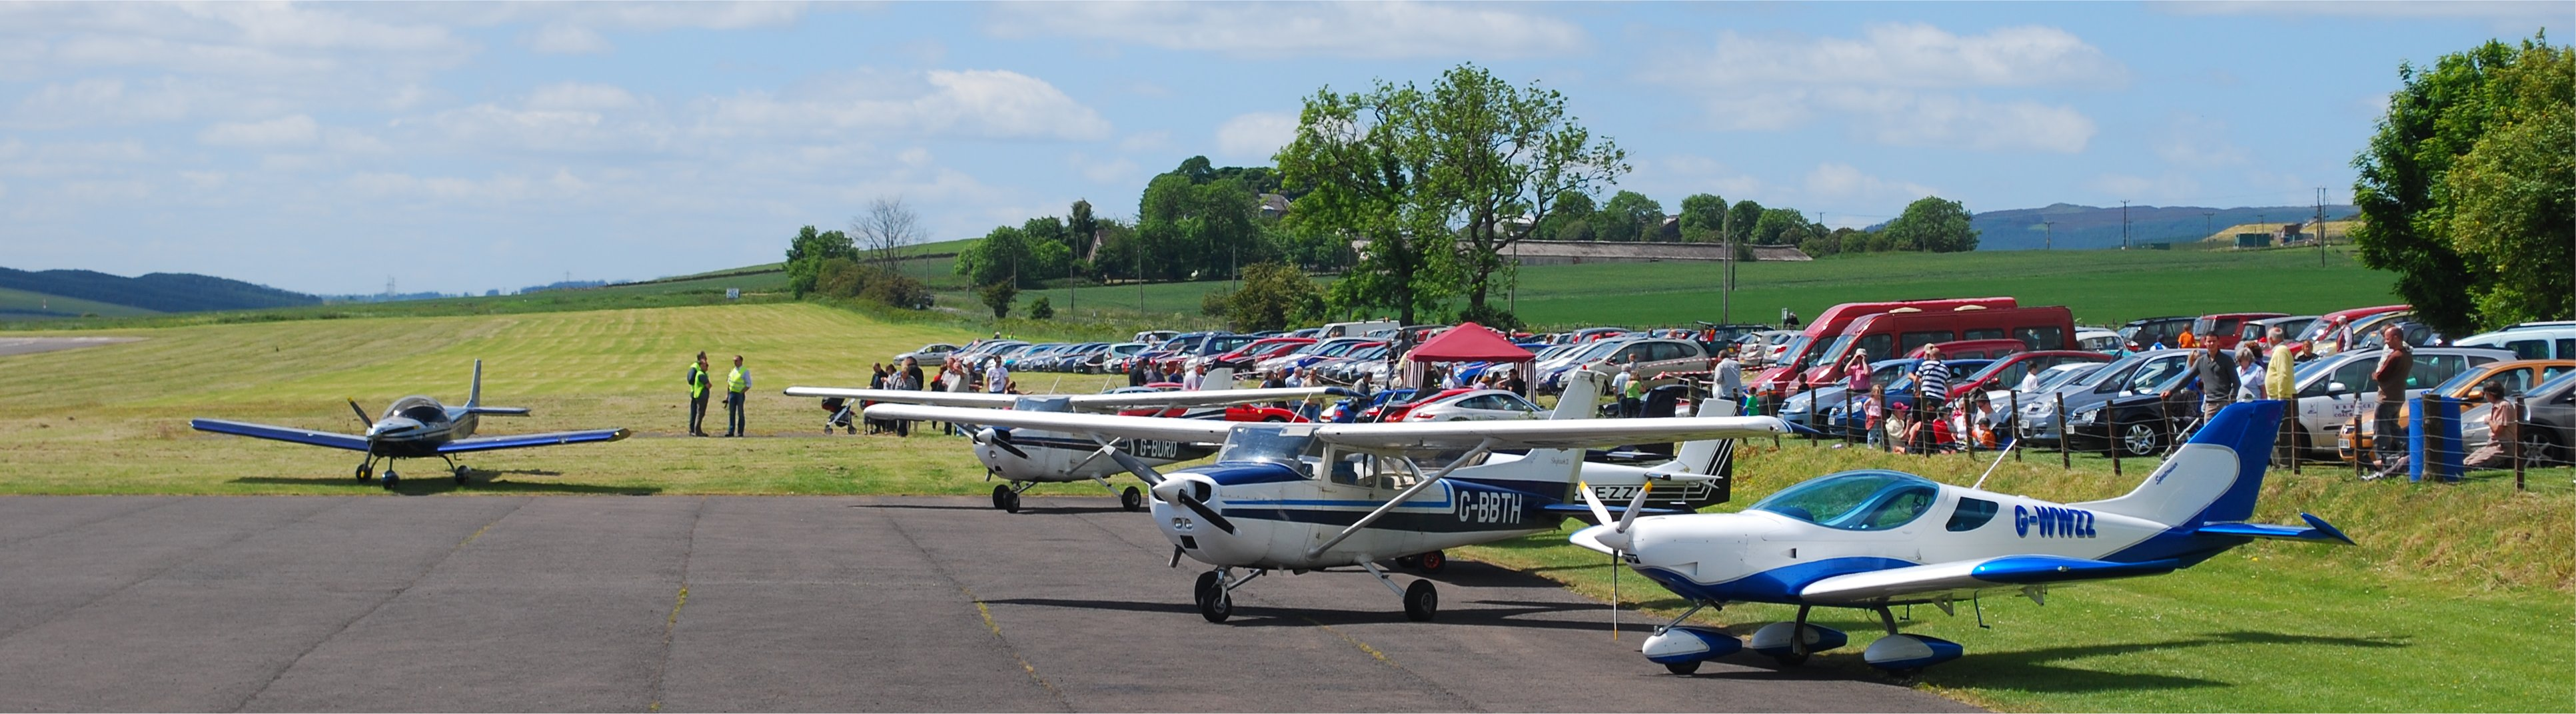 Summer Fly-In & Open Day